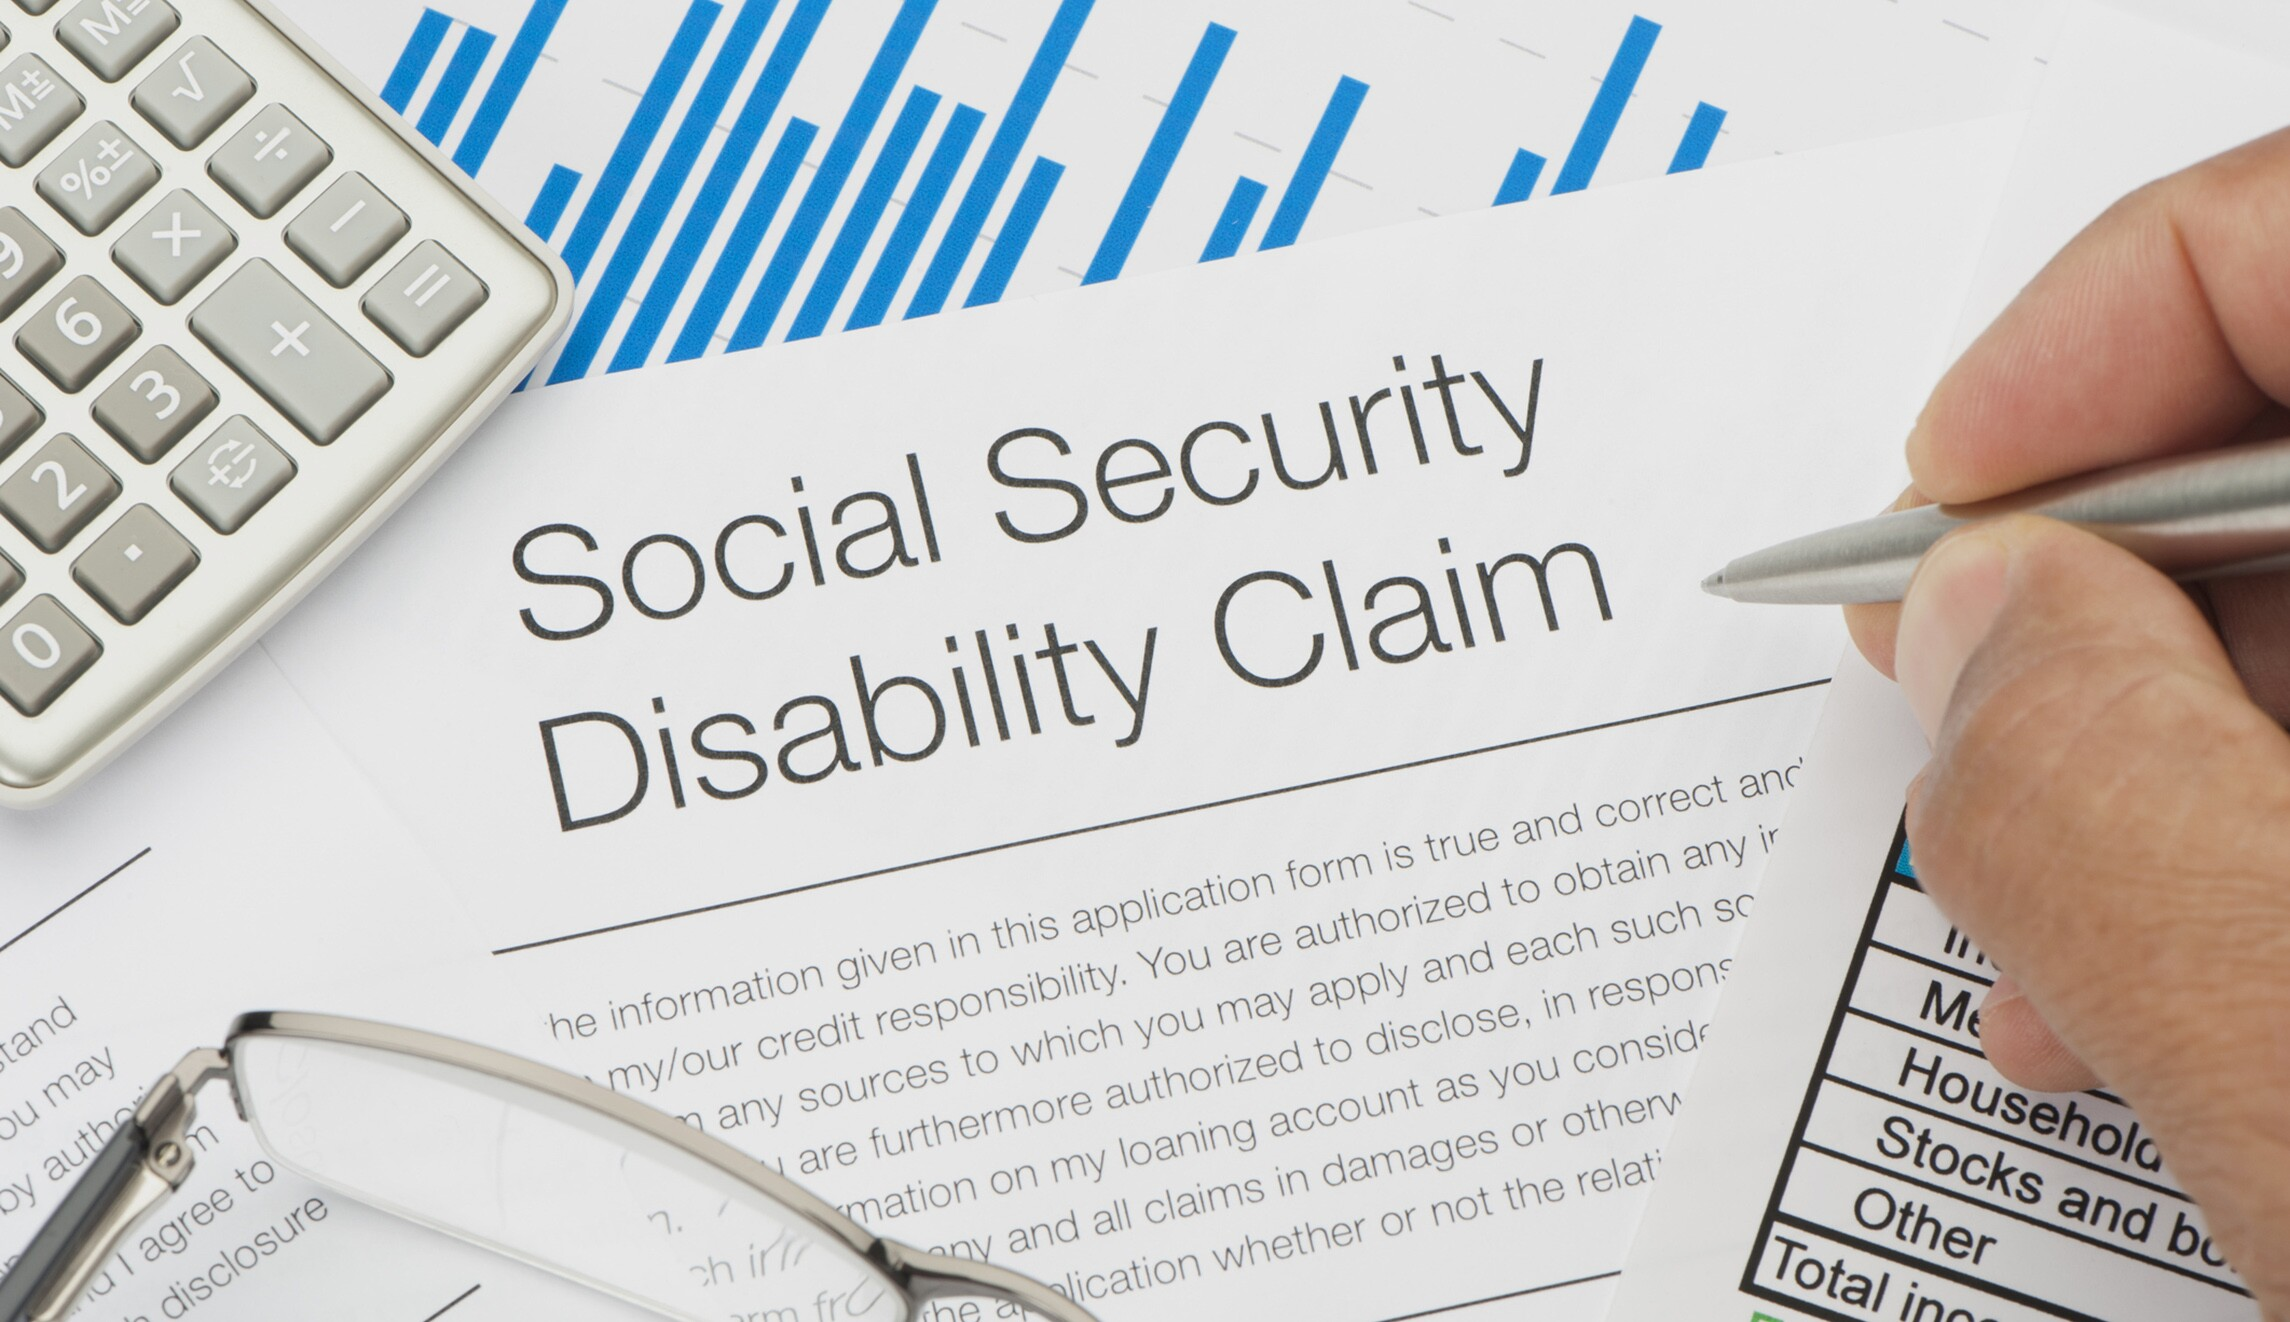 Disability insurance is failing the most vulnerable and needs to be